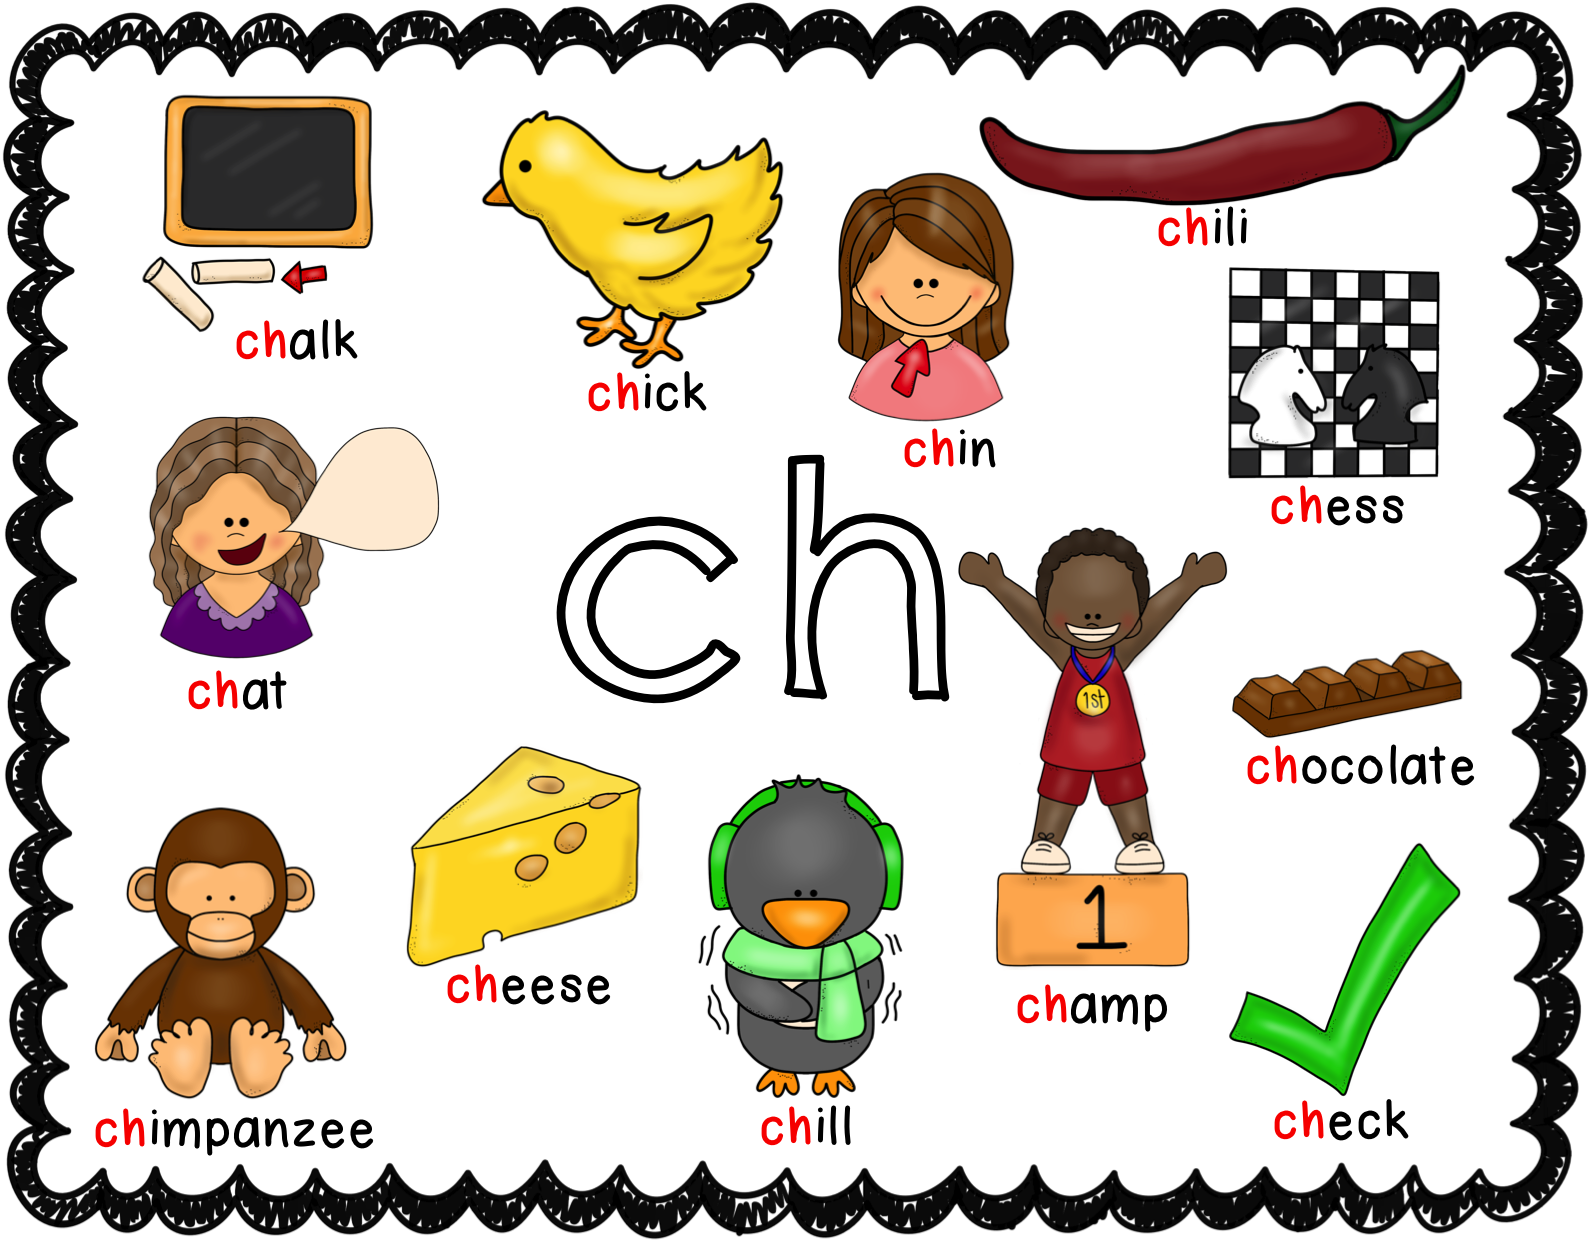 Digraph Posters - ch,ck,dge,kn,ng,ph,sh,tch,th,wh,wr | Ssw und Kind